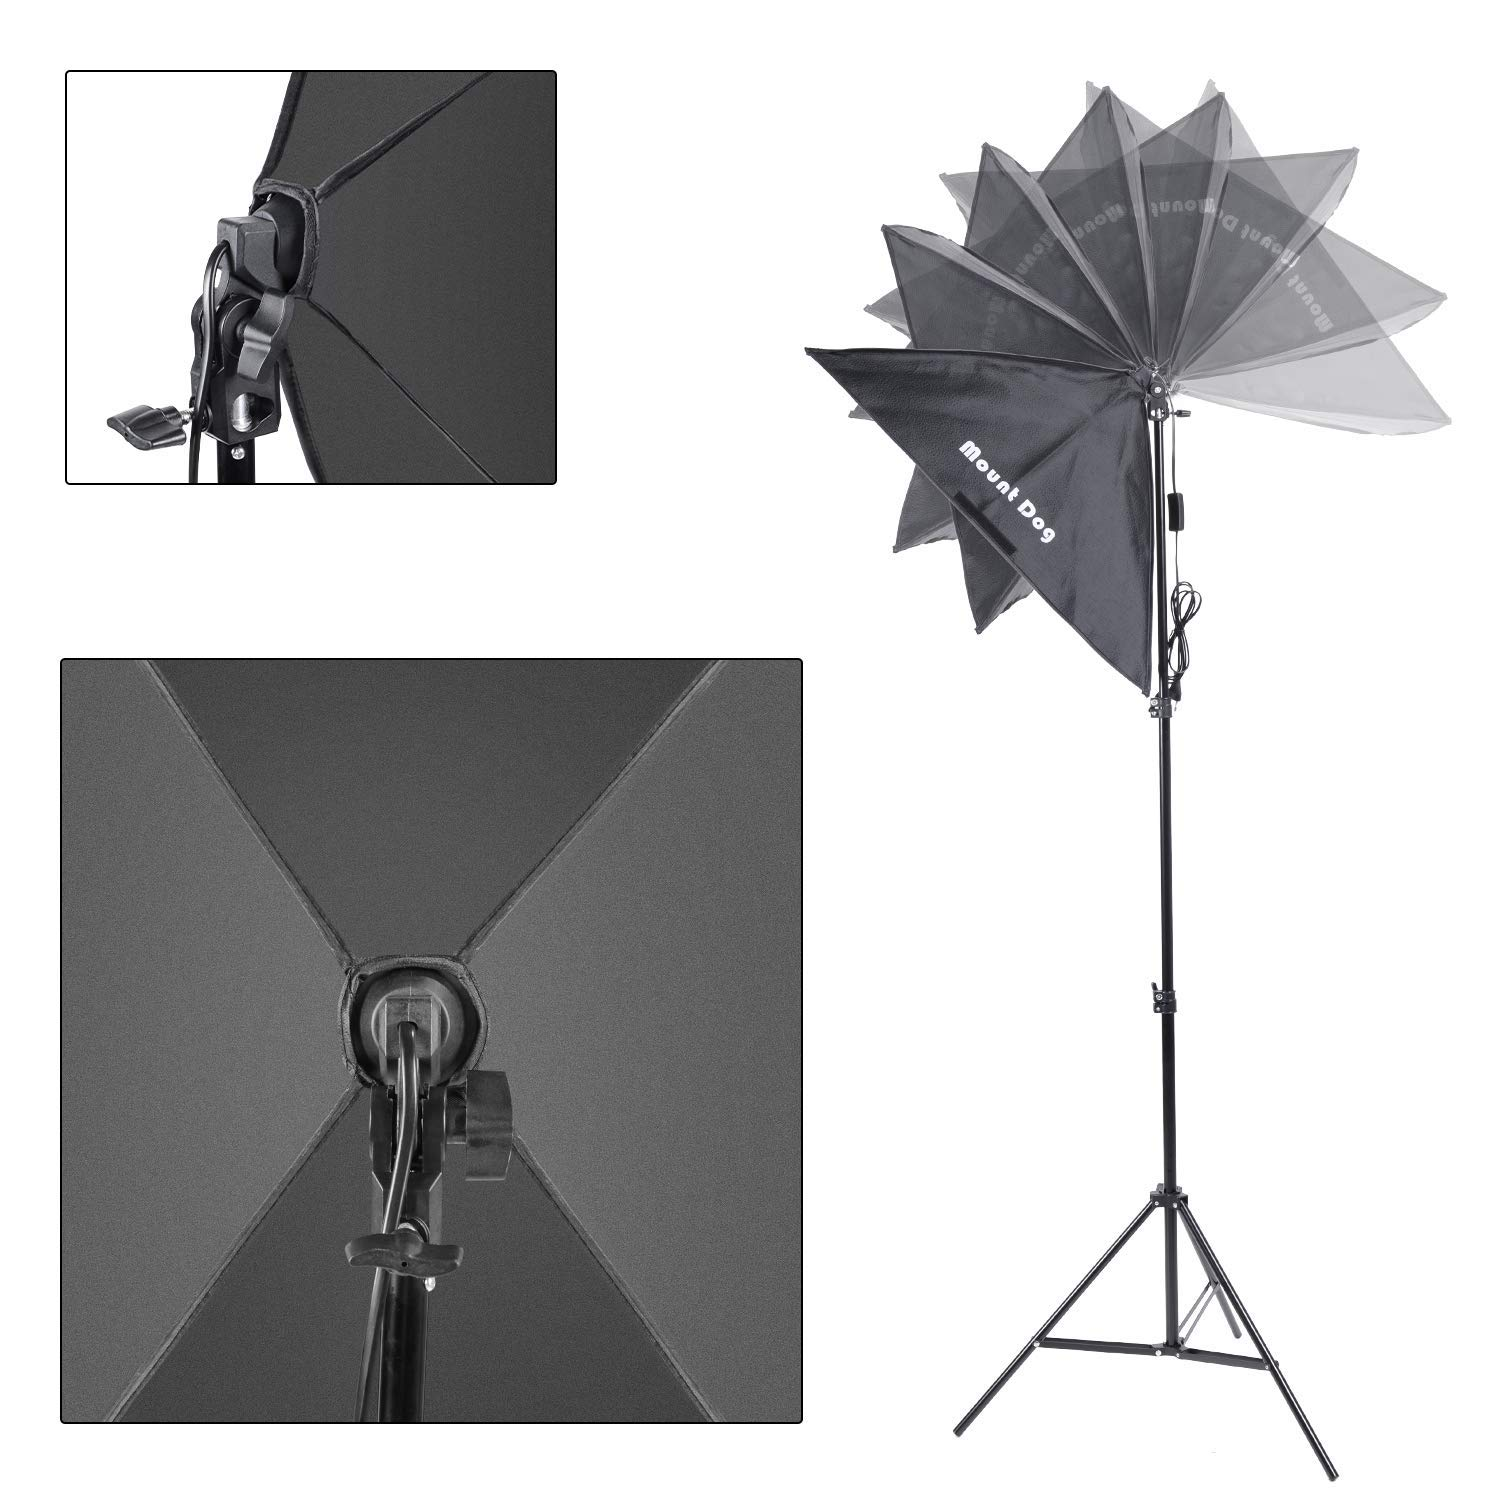 MOUNTDOG 1350W Photography Softbox Lighting Kit 20''X28'' Professional Continuous Light System with 3pcs E27 Video Bulbs 5500K Photo Studio Equipment for Filming Model Portraits Advertising Shooting by MOUNTDOG (Image #8)